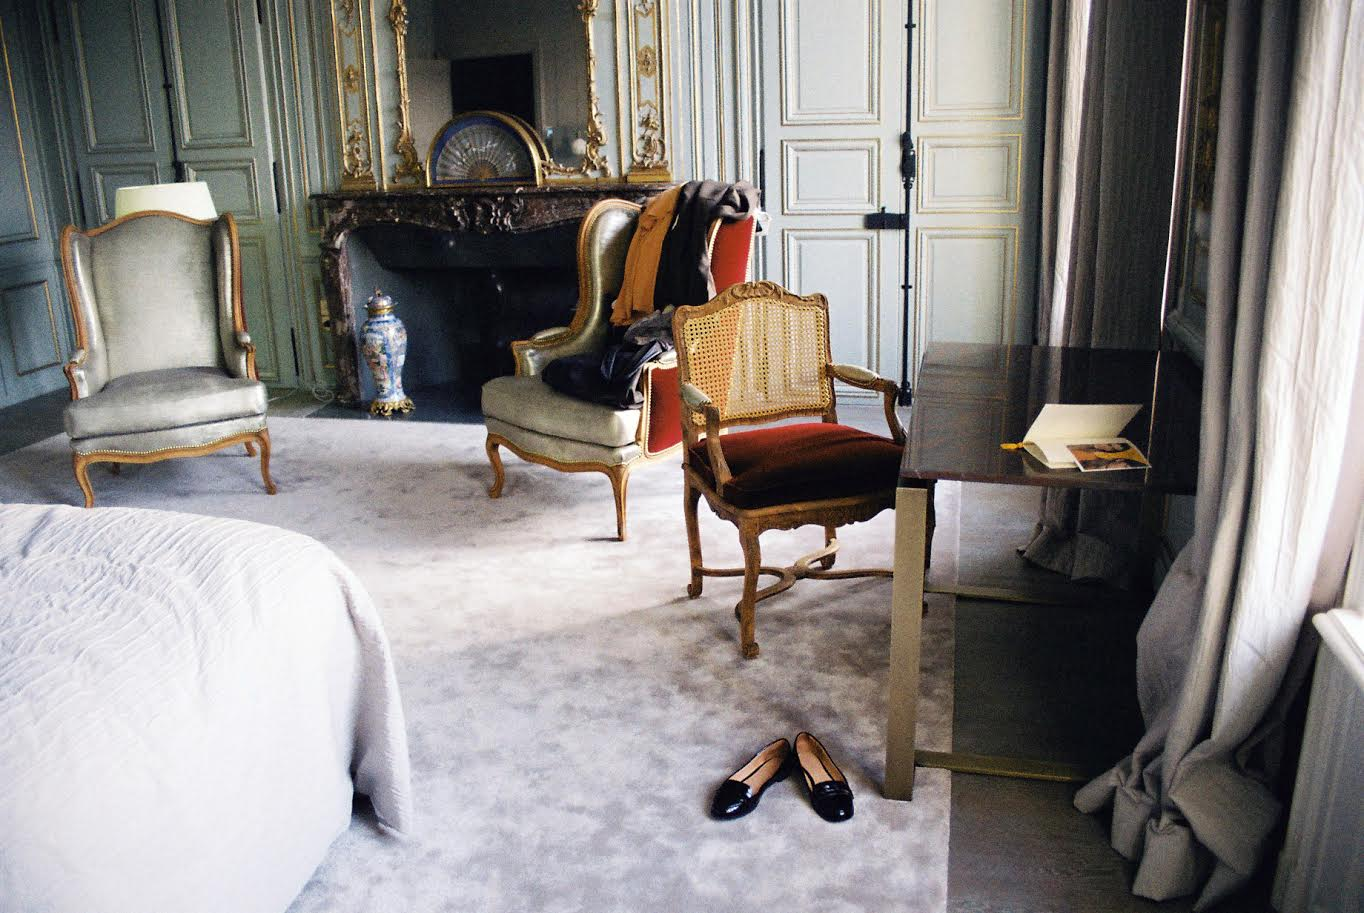 Hotel du Marc, House belonging to Madame Clicquot  Reims, France